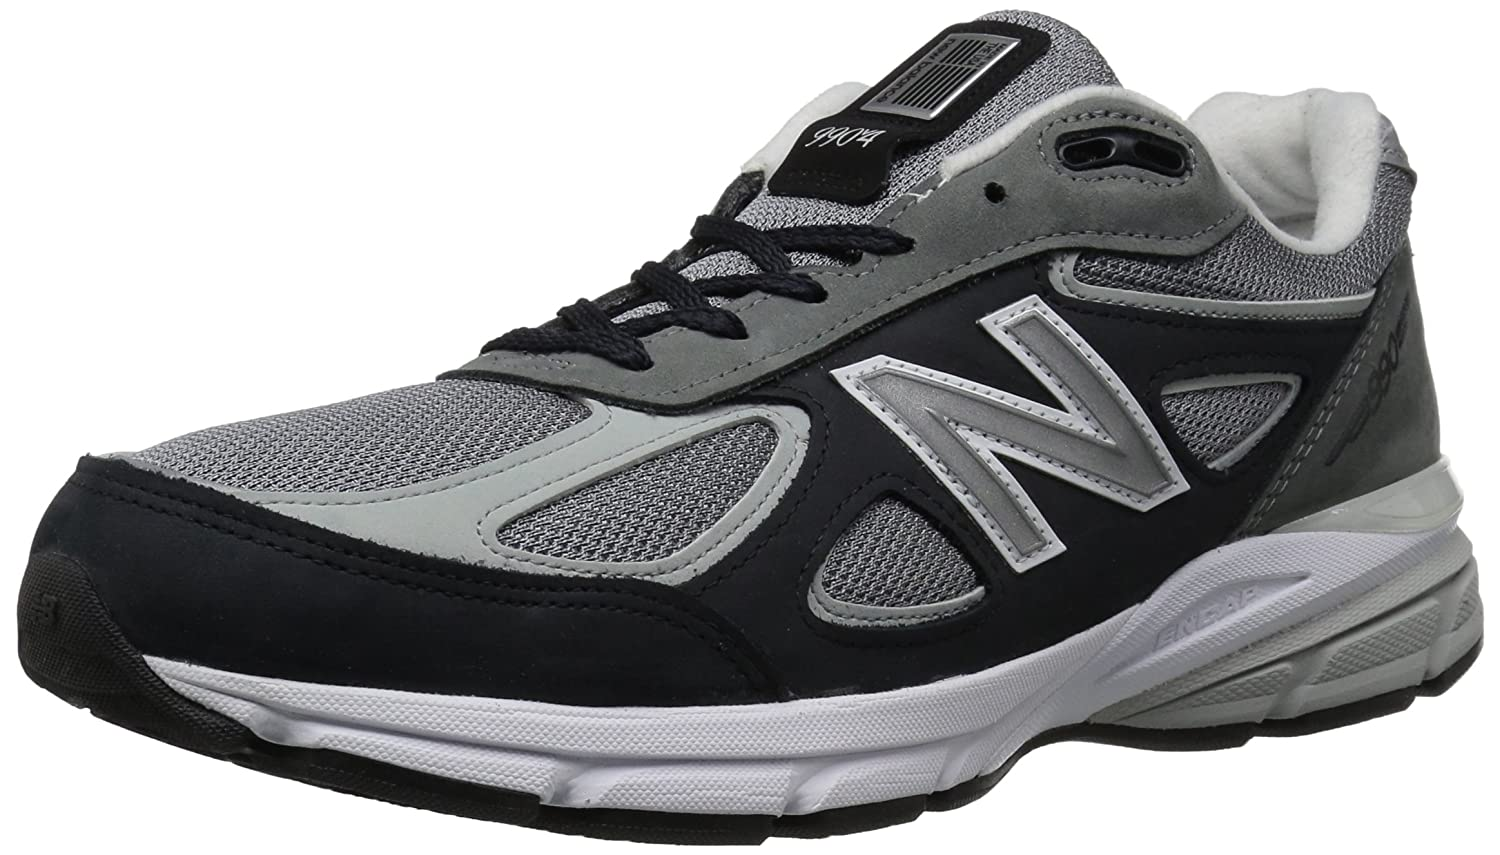 reputable site 58dd3 fac2a ... free shipping new new balance 990 menns amazon 7qquthrzsw cad7a 153ef